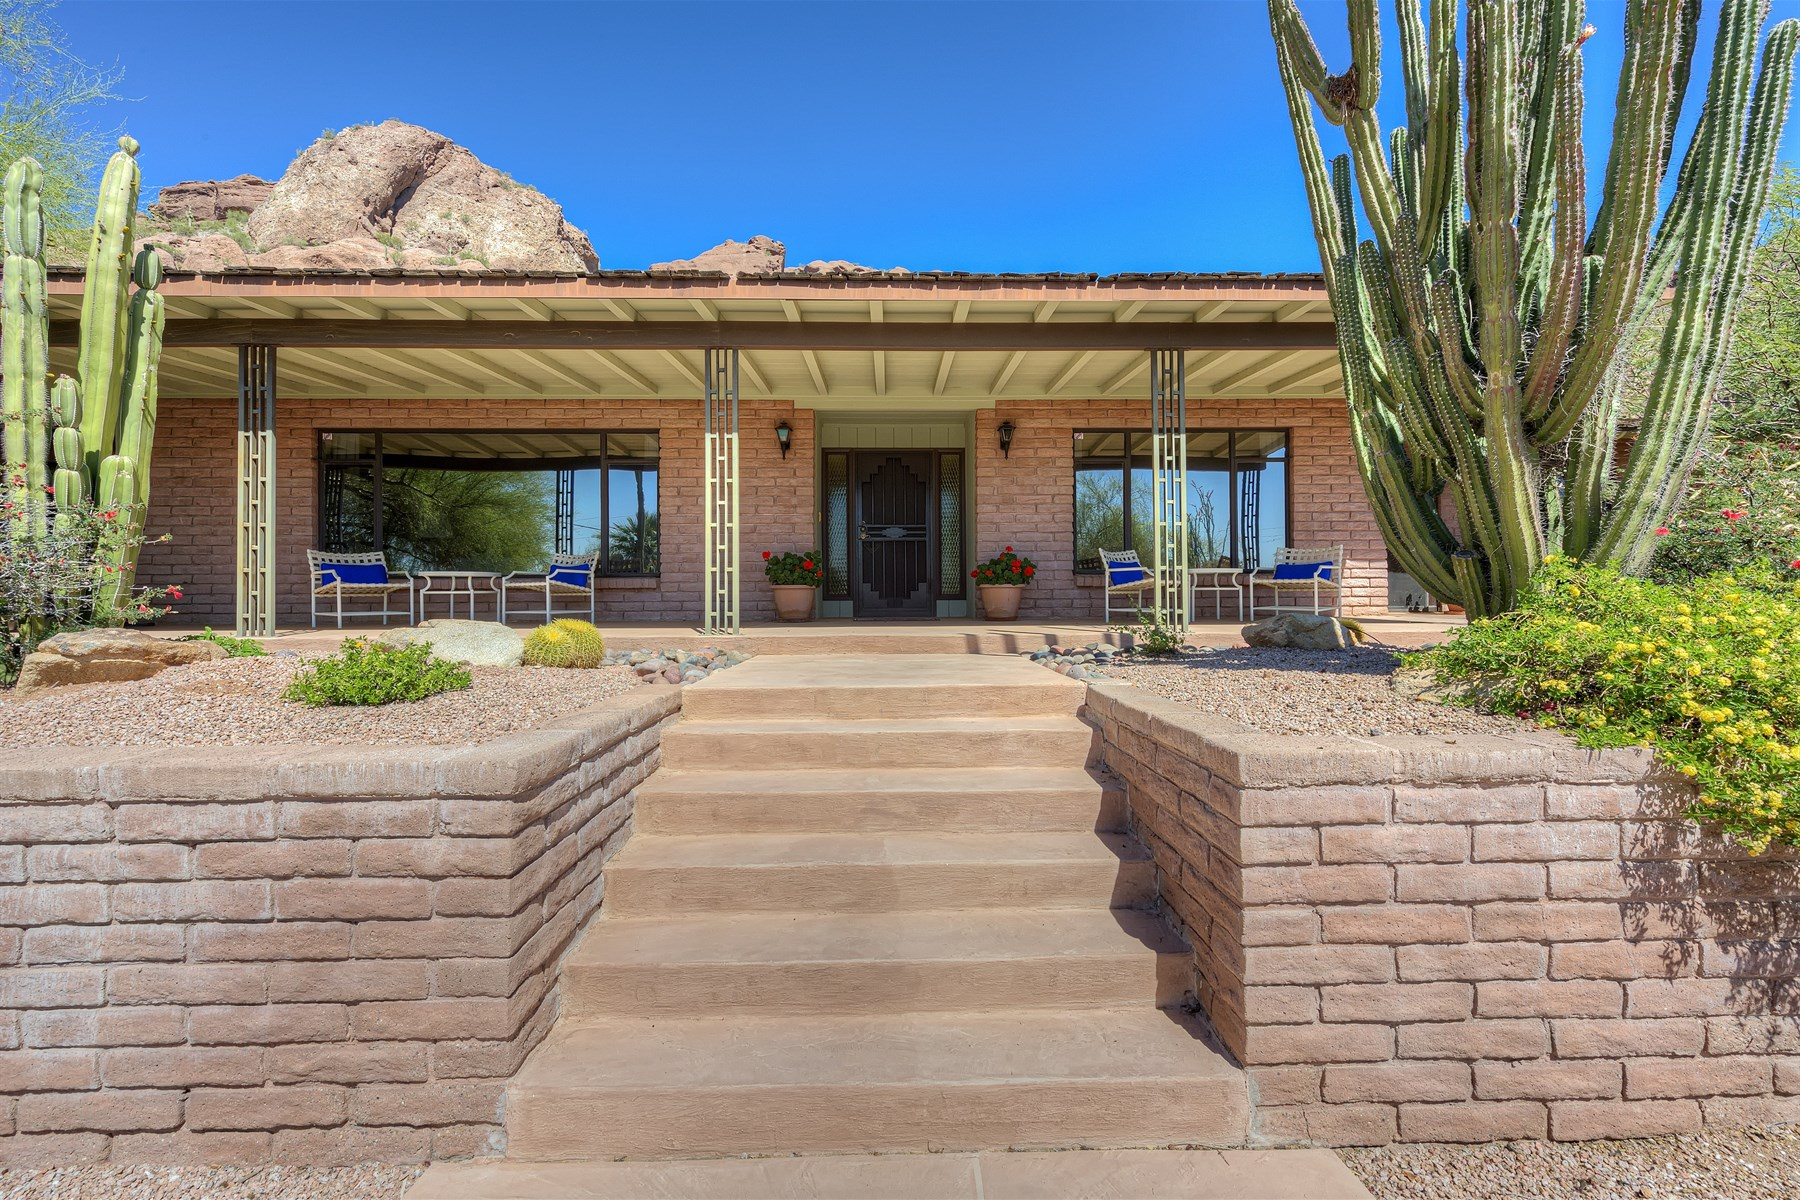 獨棟家庭住宅 為 出售 在 Classic Ranch Home Located On The South Side Of Camelback Mountain 5222 N Saddle Rock Drive Phoenix, 亞利桑那州 85018 美國